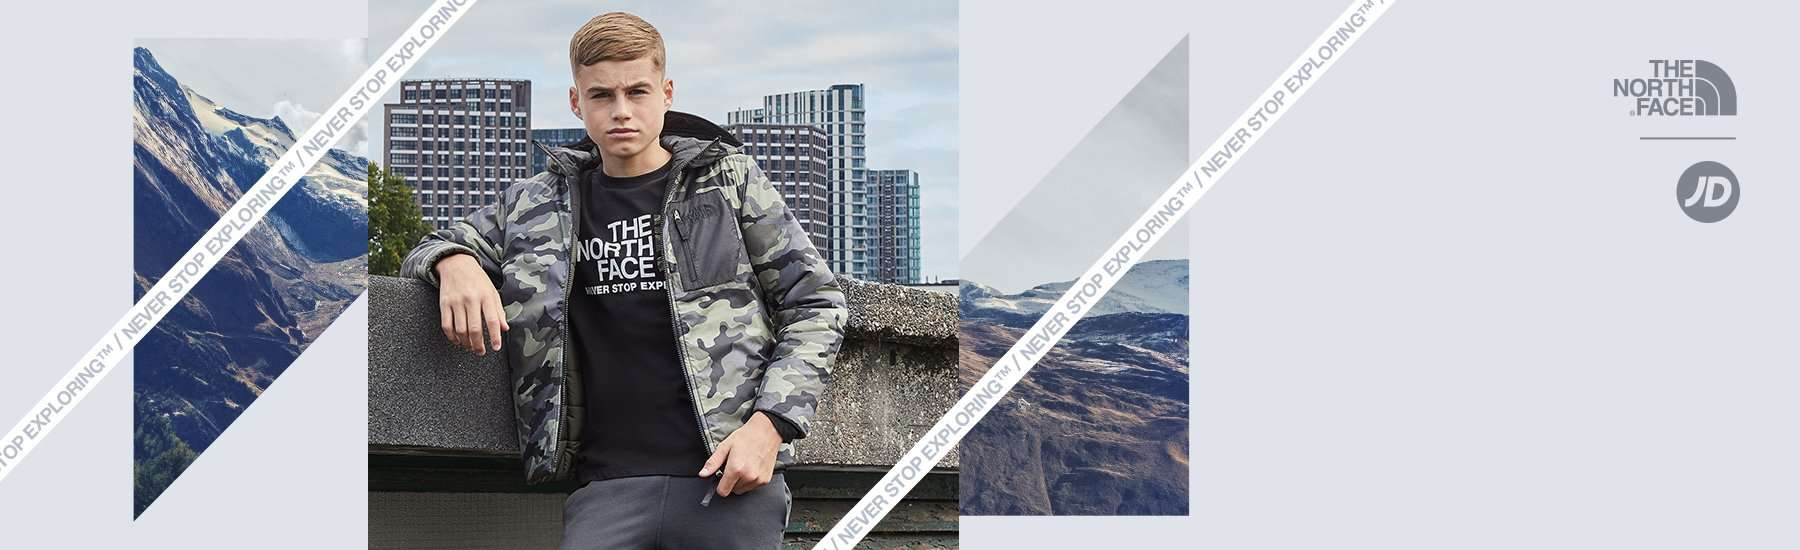 he-north-face/